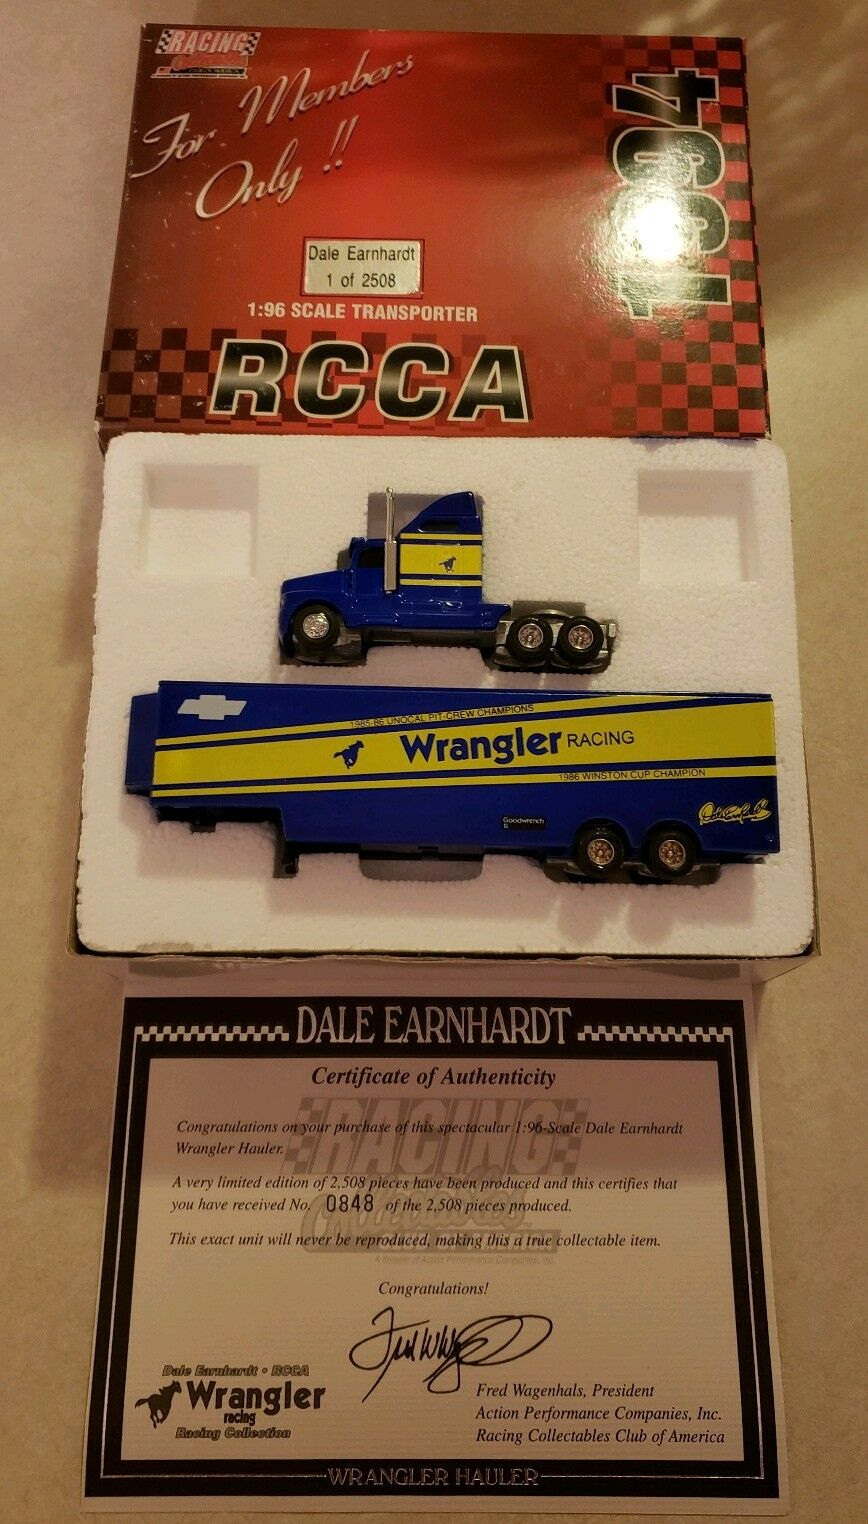 Racing Collectables 1994 Dale Earnhardt Wrangler Hauler 848 de 2509